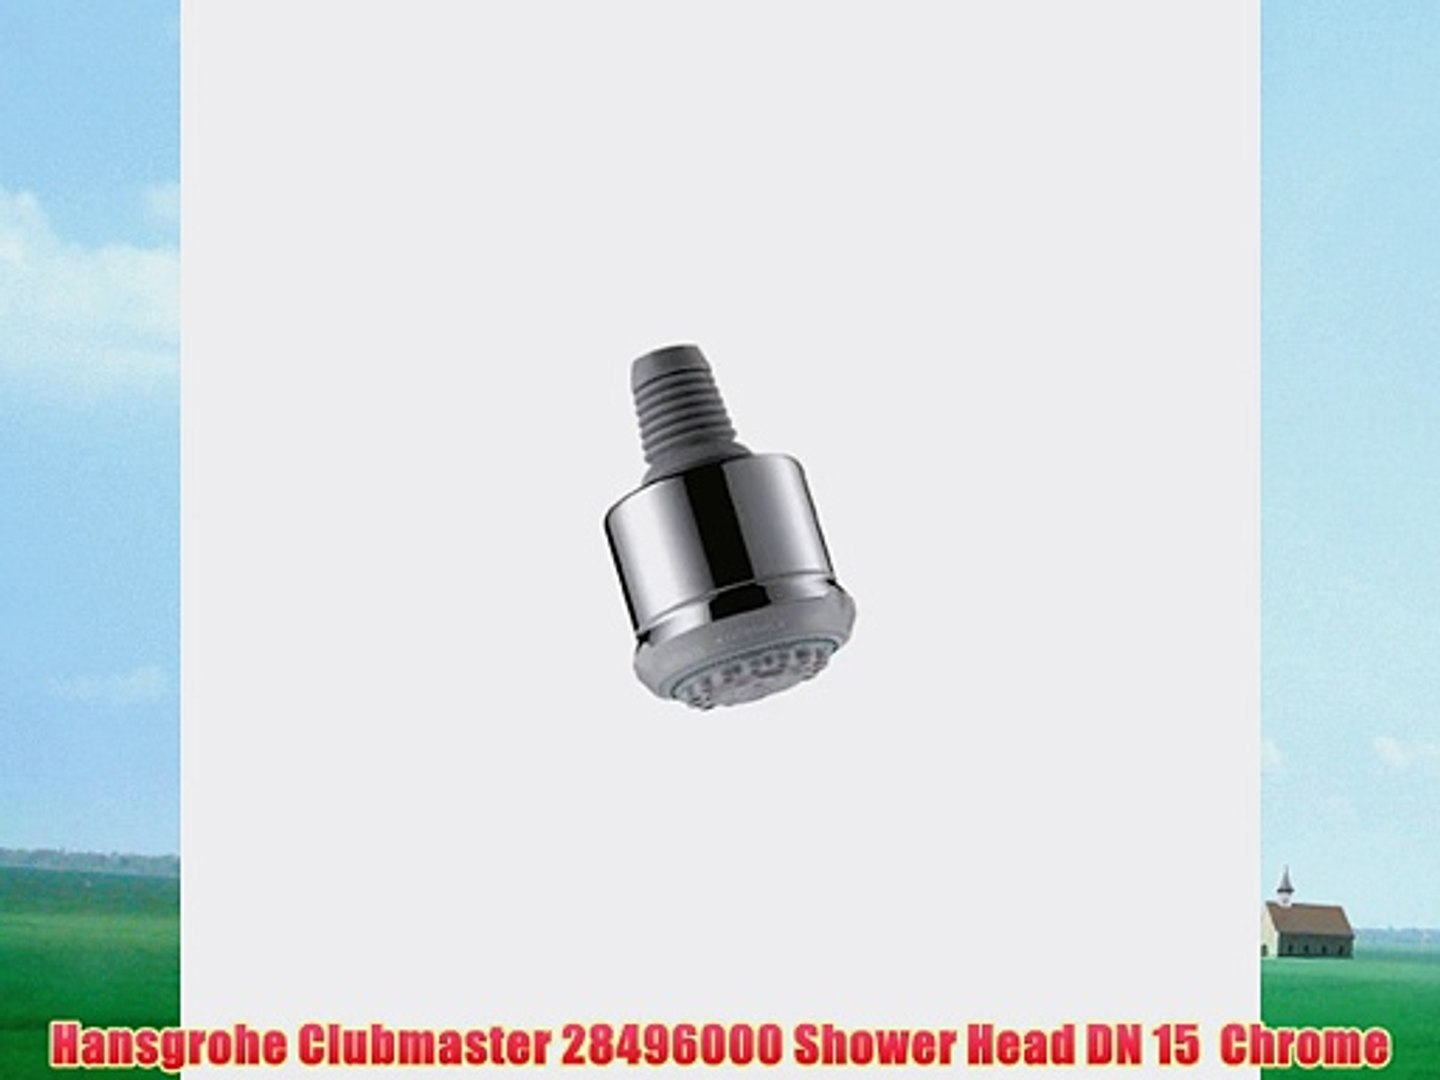 Hansgrohe Clubmaster 28496000 Shower Head Dn 15 Chrome